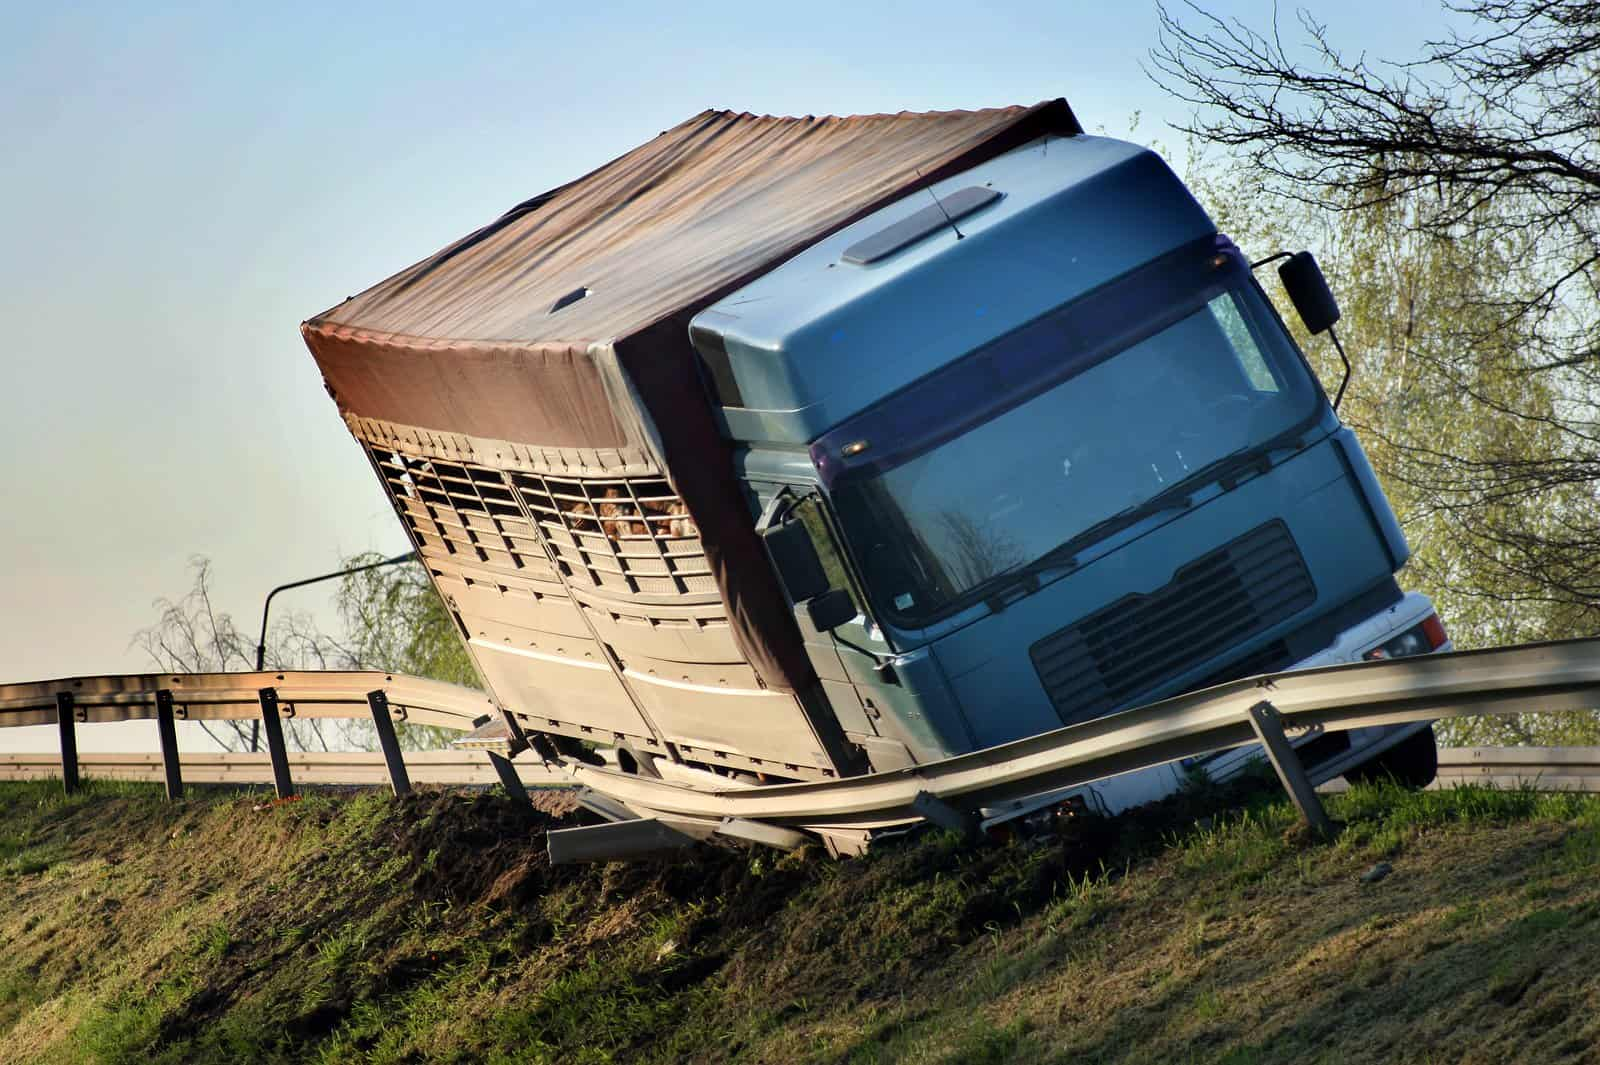 Trucking Accident - Who Ensures that Commercial Cargo is Properly Secured?